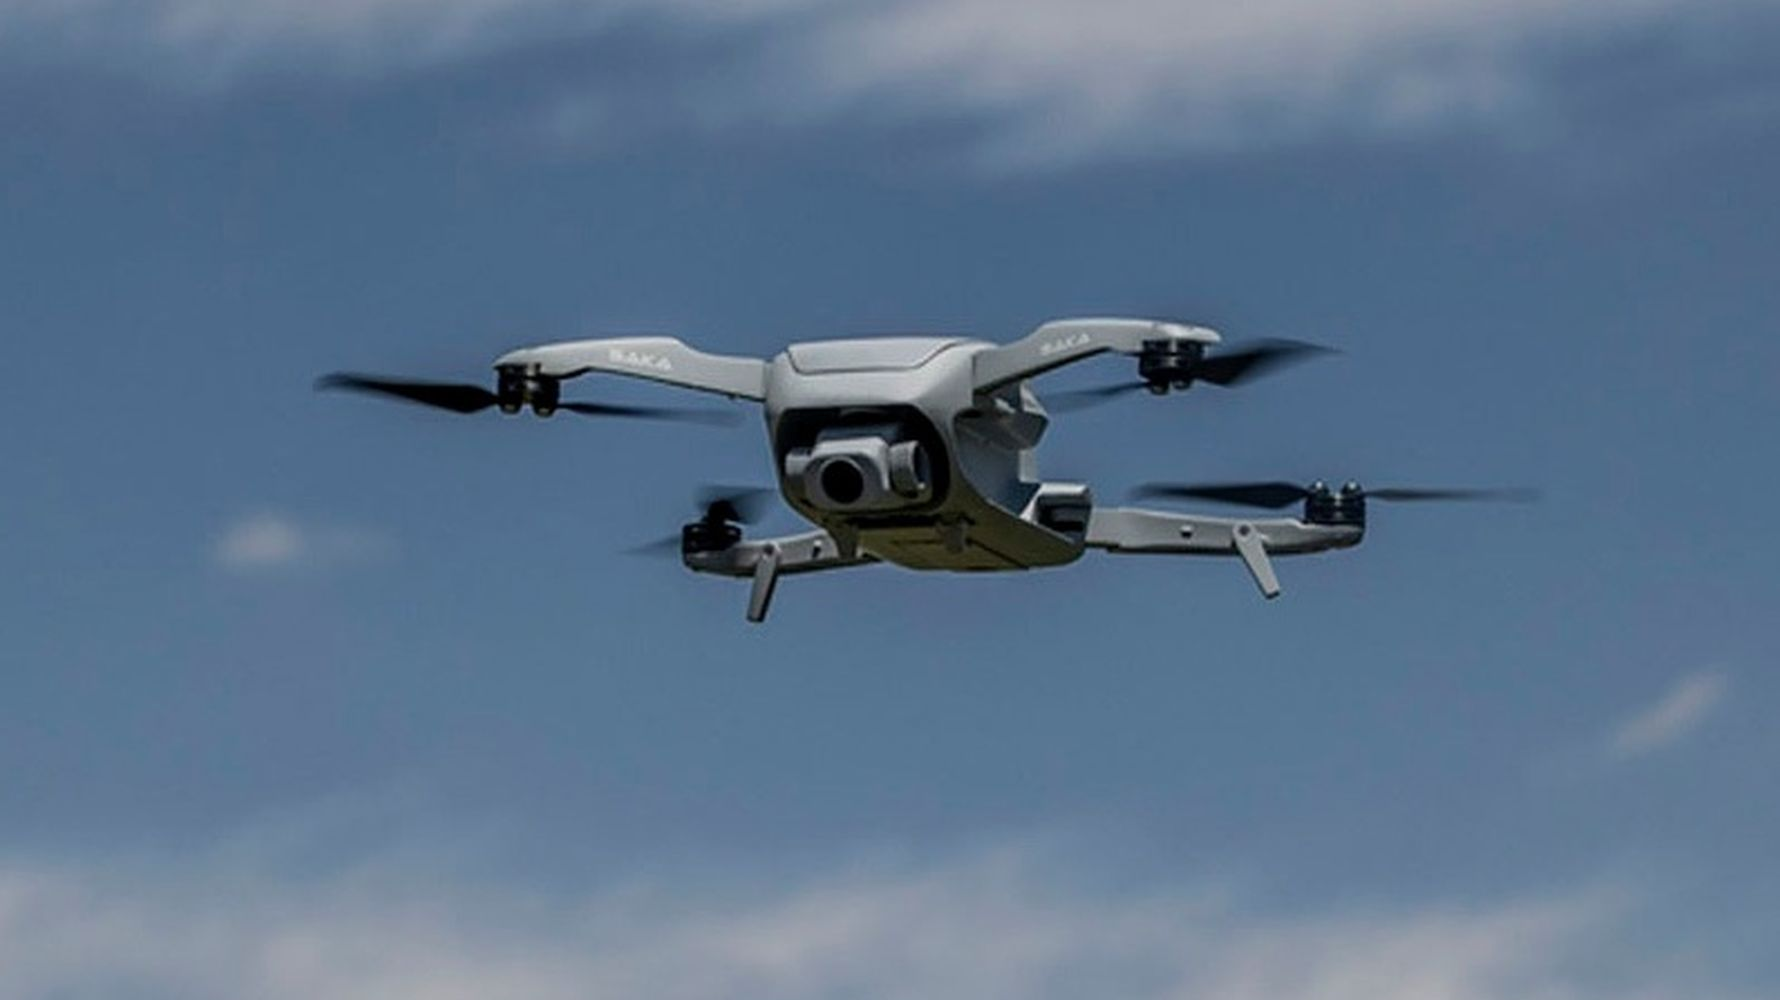 Aselsan Saka UAV system flight tests were carried out successfully